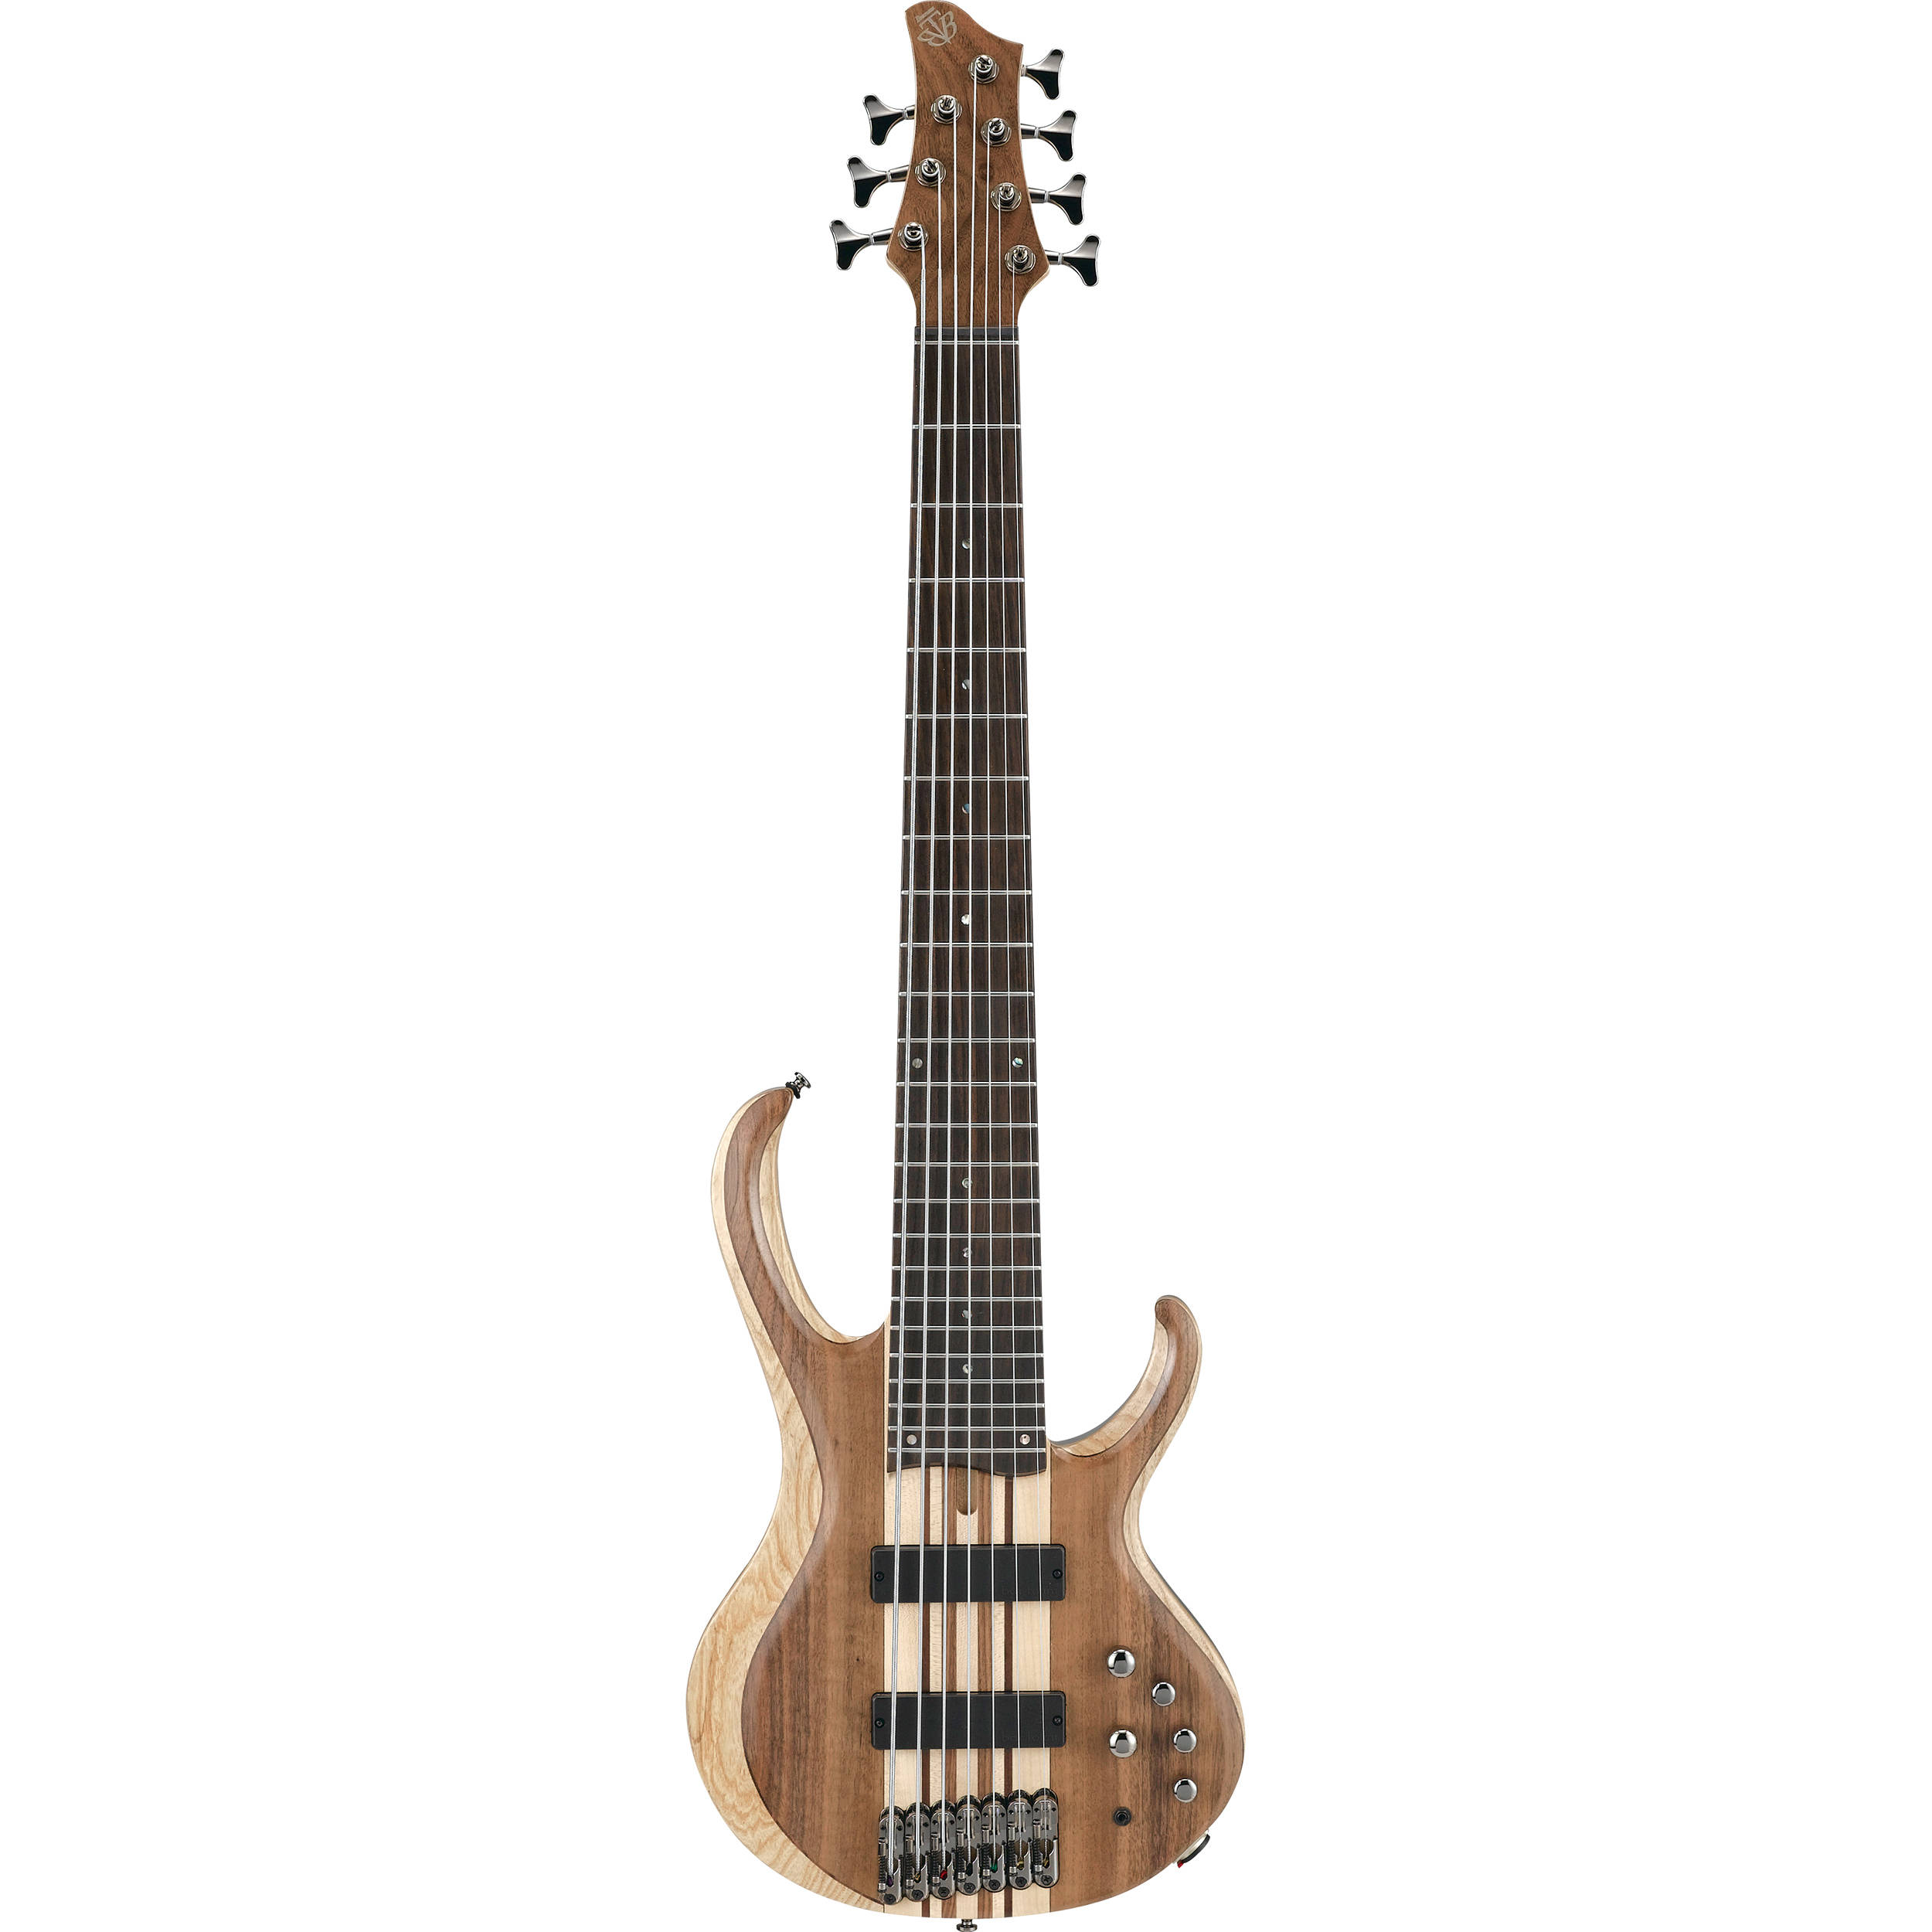 ibanez btb747 7 string electric bass natural low gloss. Black Bedroom Furniture Sets. Home Design Ideas